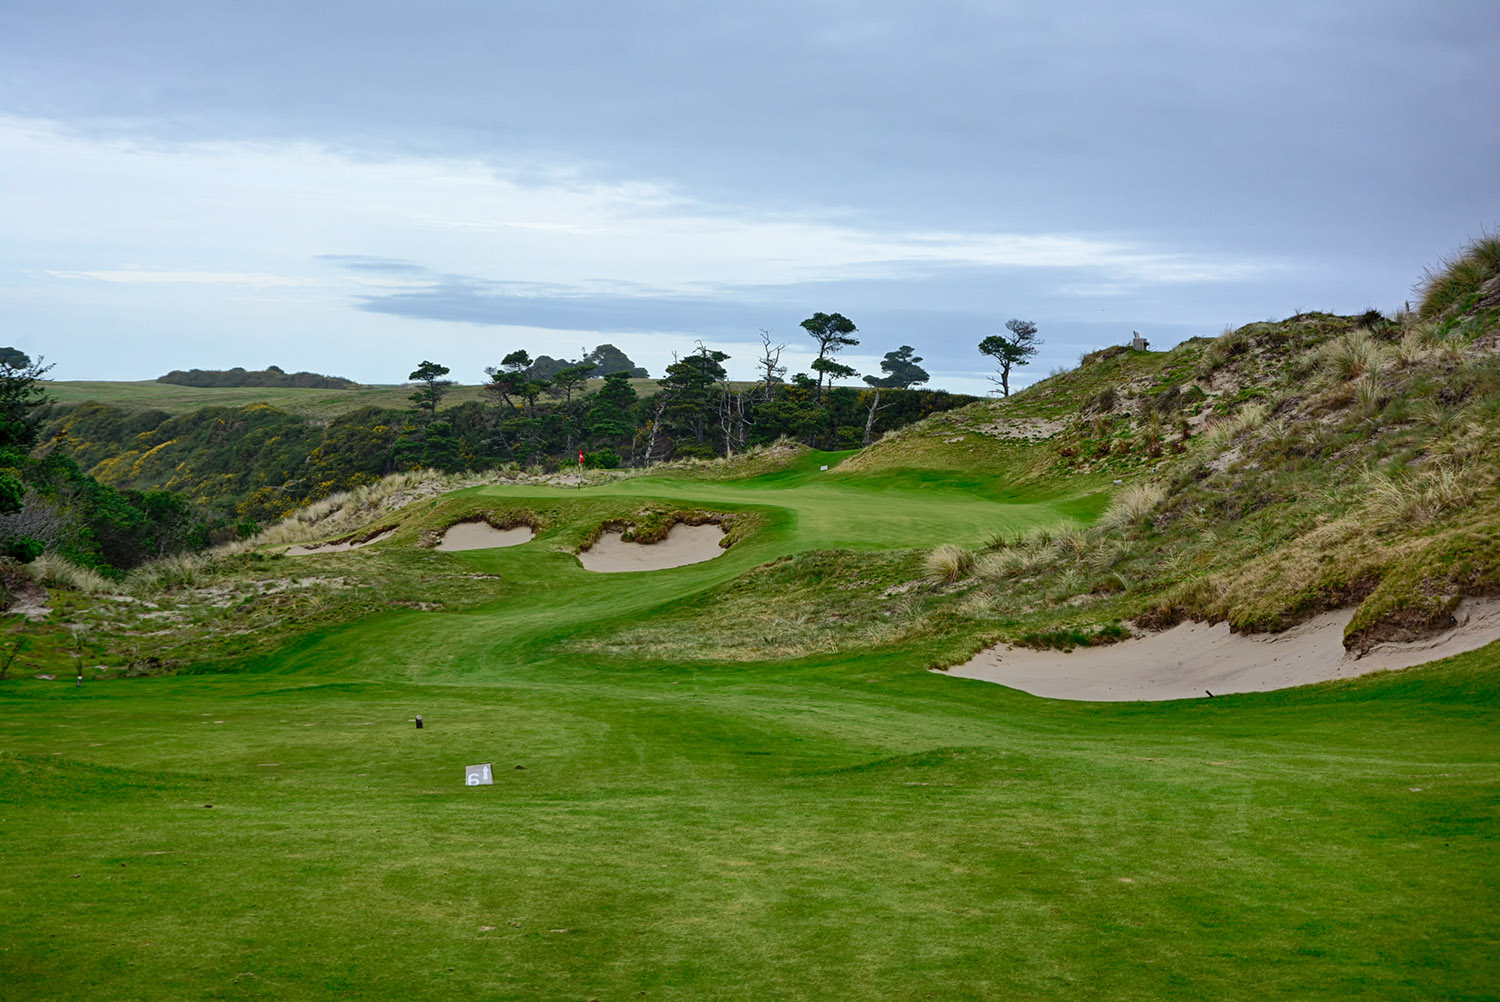 the 6th hole at Bandon Preserve